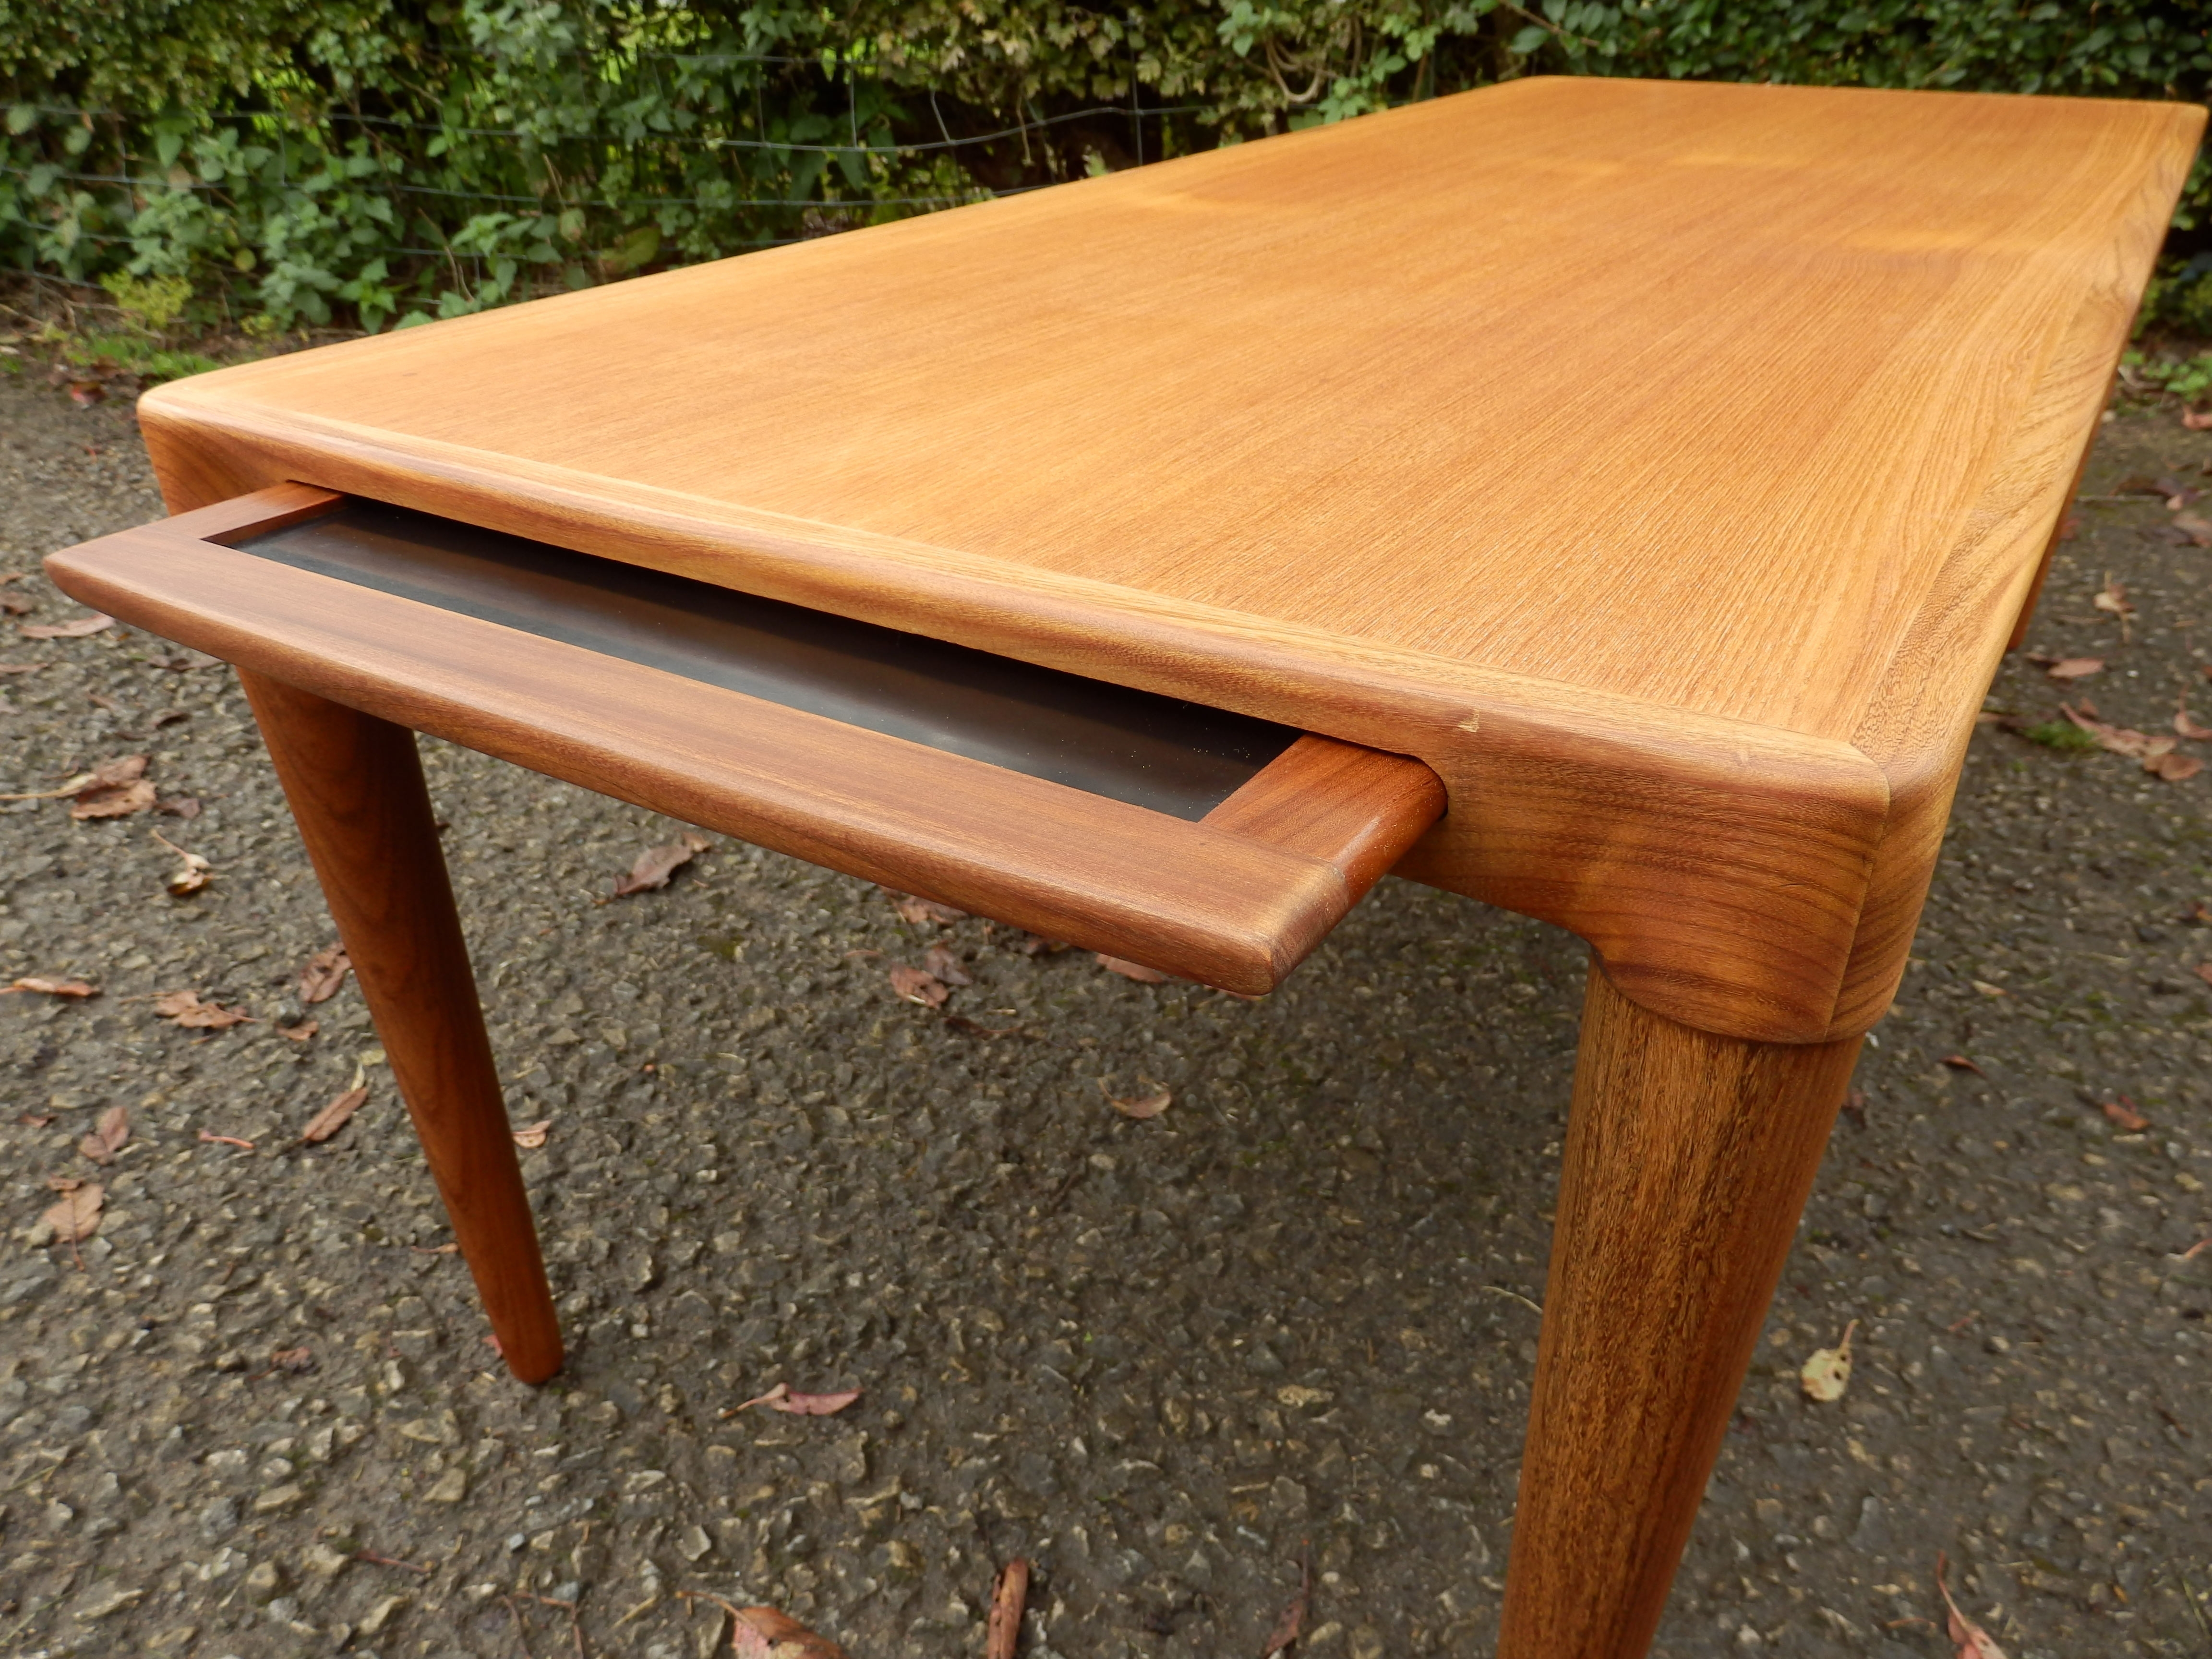 Preferred Large Teak Coffee Tables Inside Very Rare Large Teak Coffee Table With Slide Out Drinks Tray (View 11 of 20)